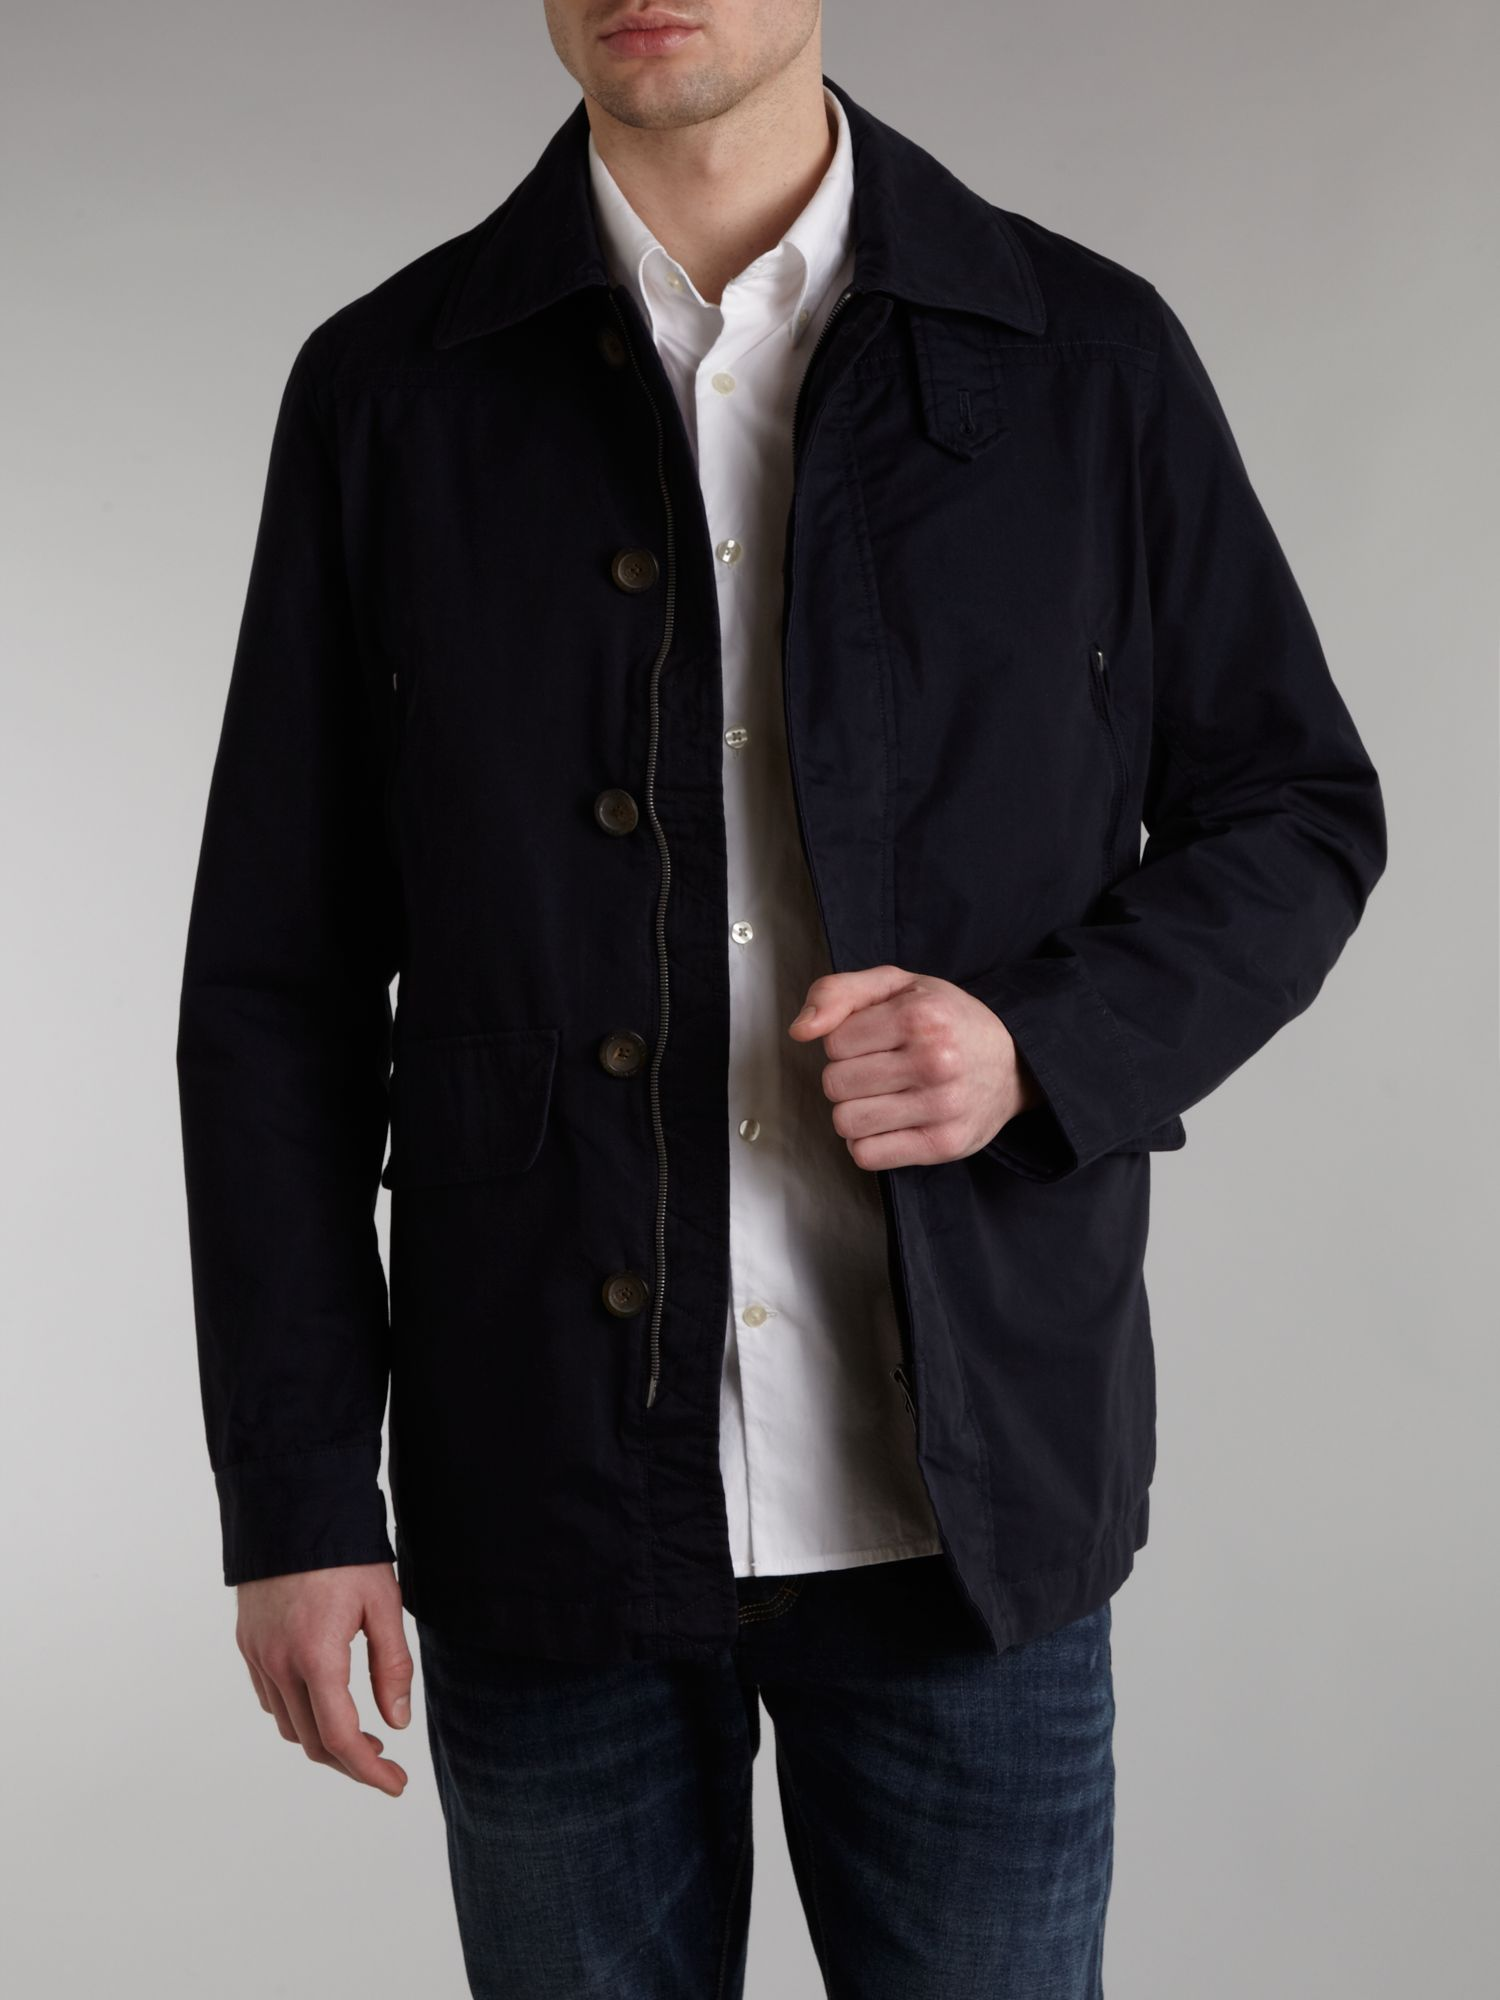 The suffolk jacket